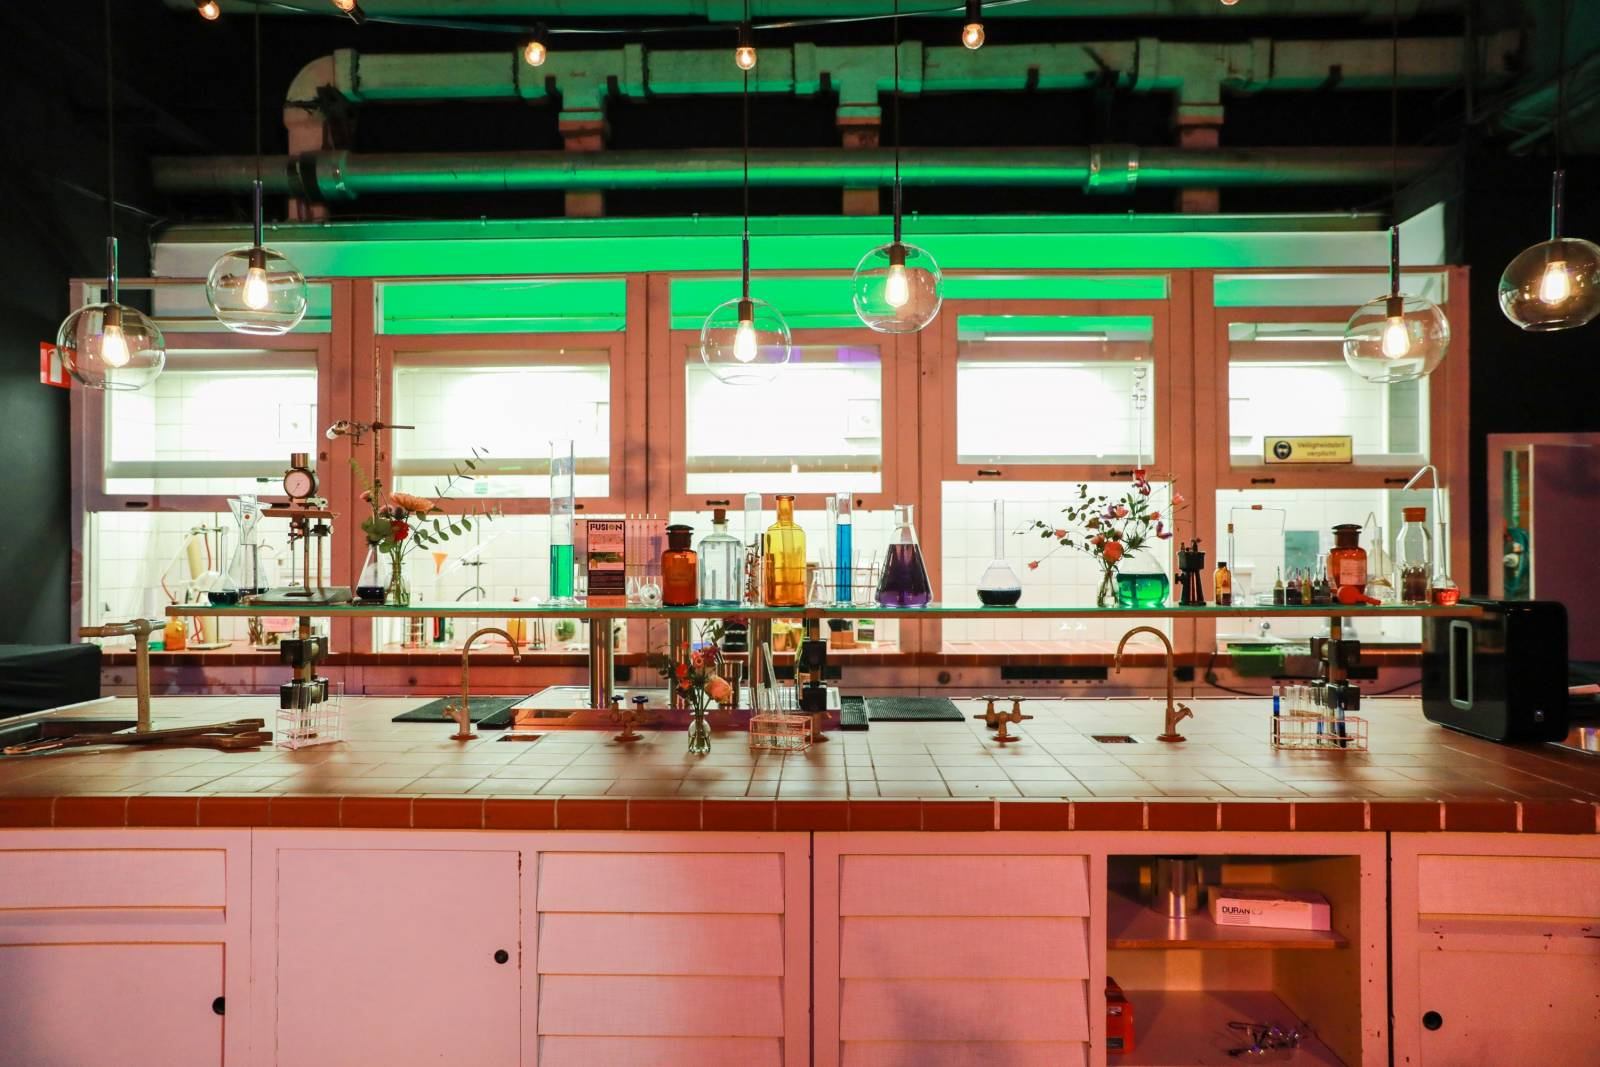 The Lab - Feestzaal - Feestlocatie - Huwelijk - Event - Feest - House of Weddings & House of Events - 39 (Custom)